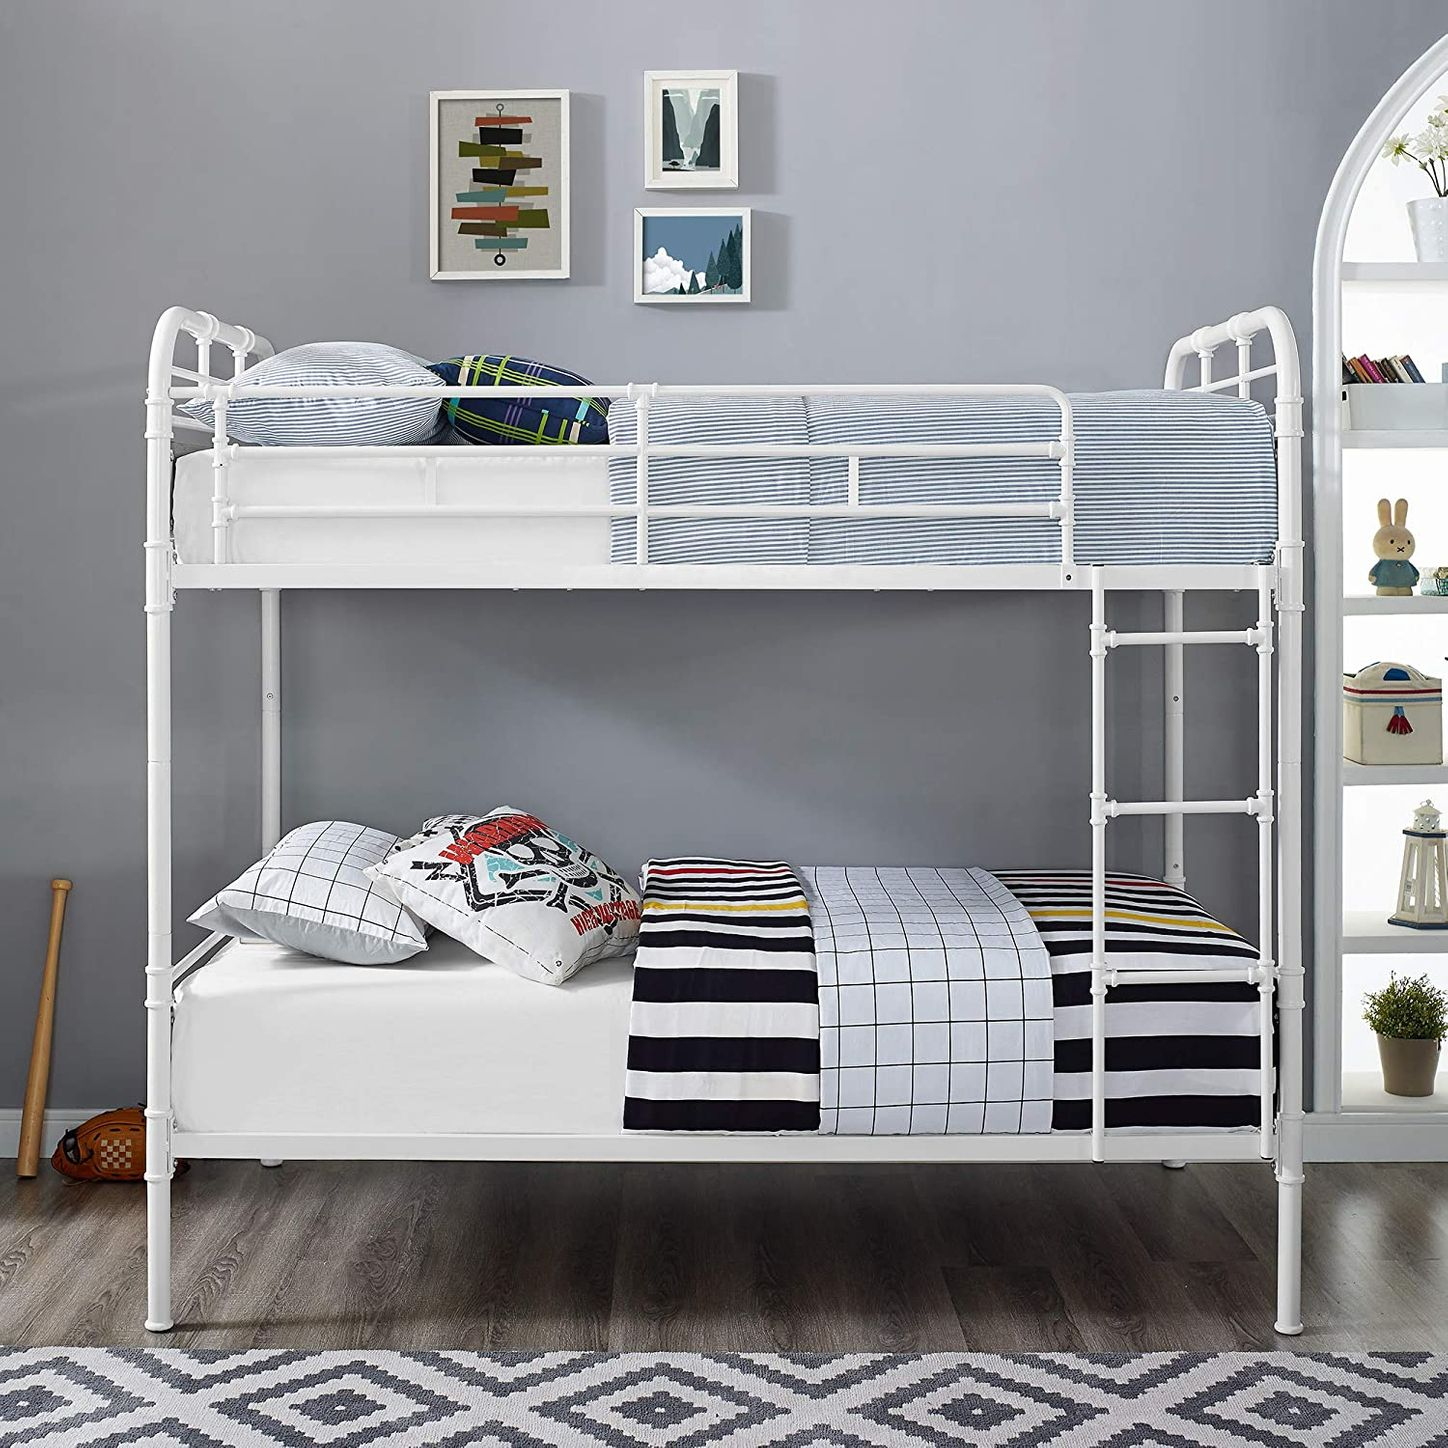 8 Best Bunk Beds 2020 The Strategist